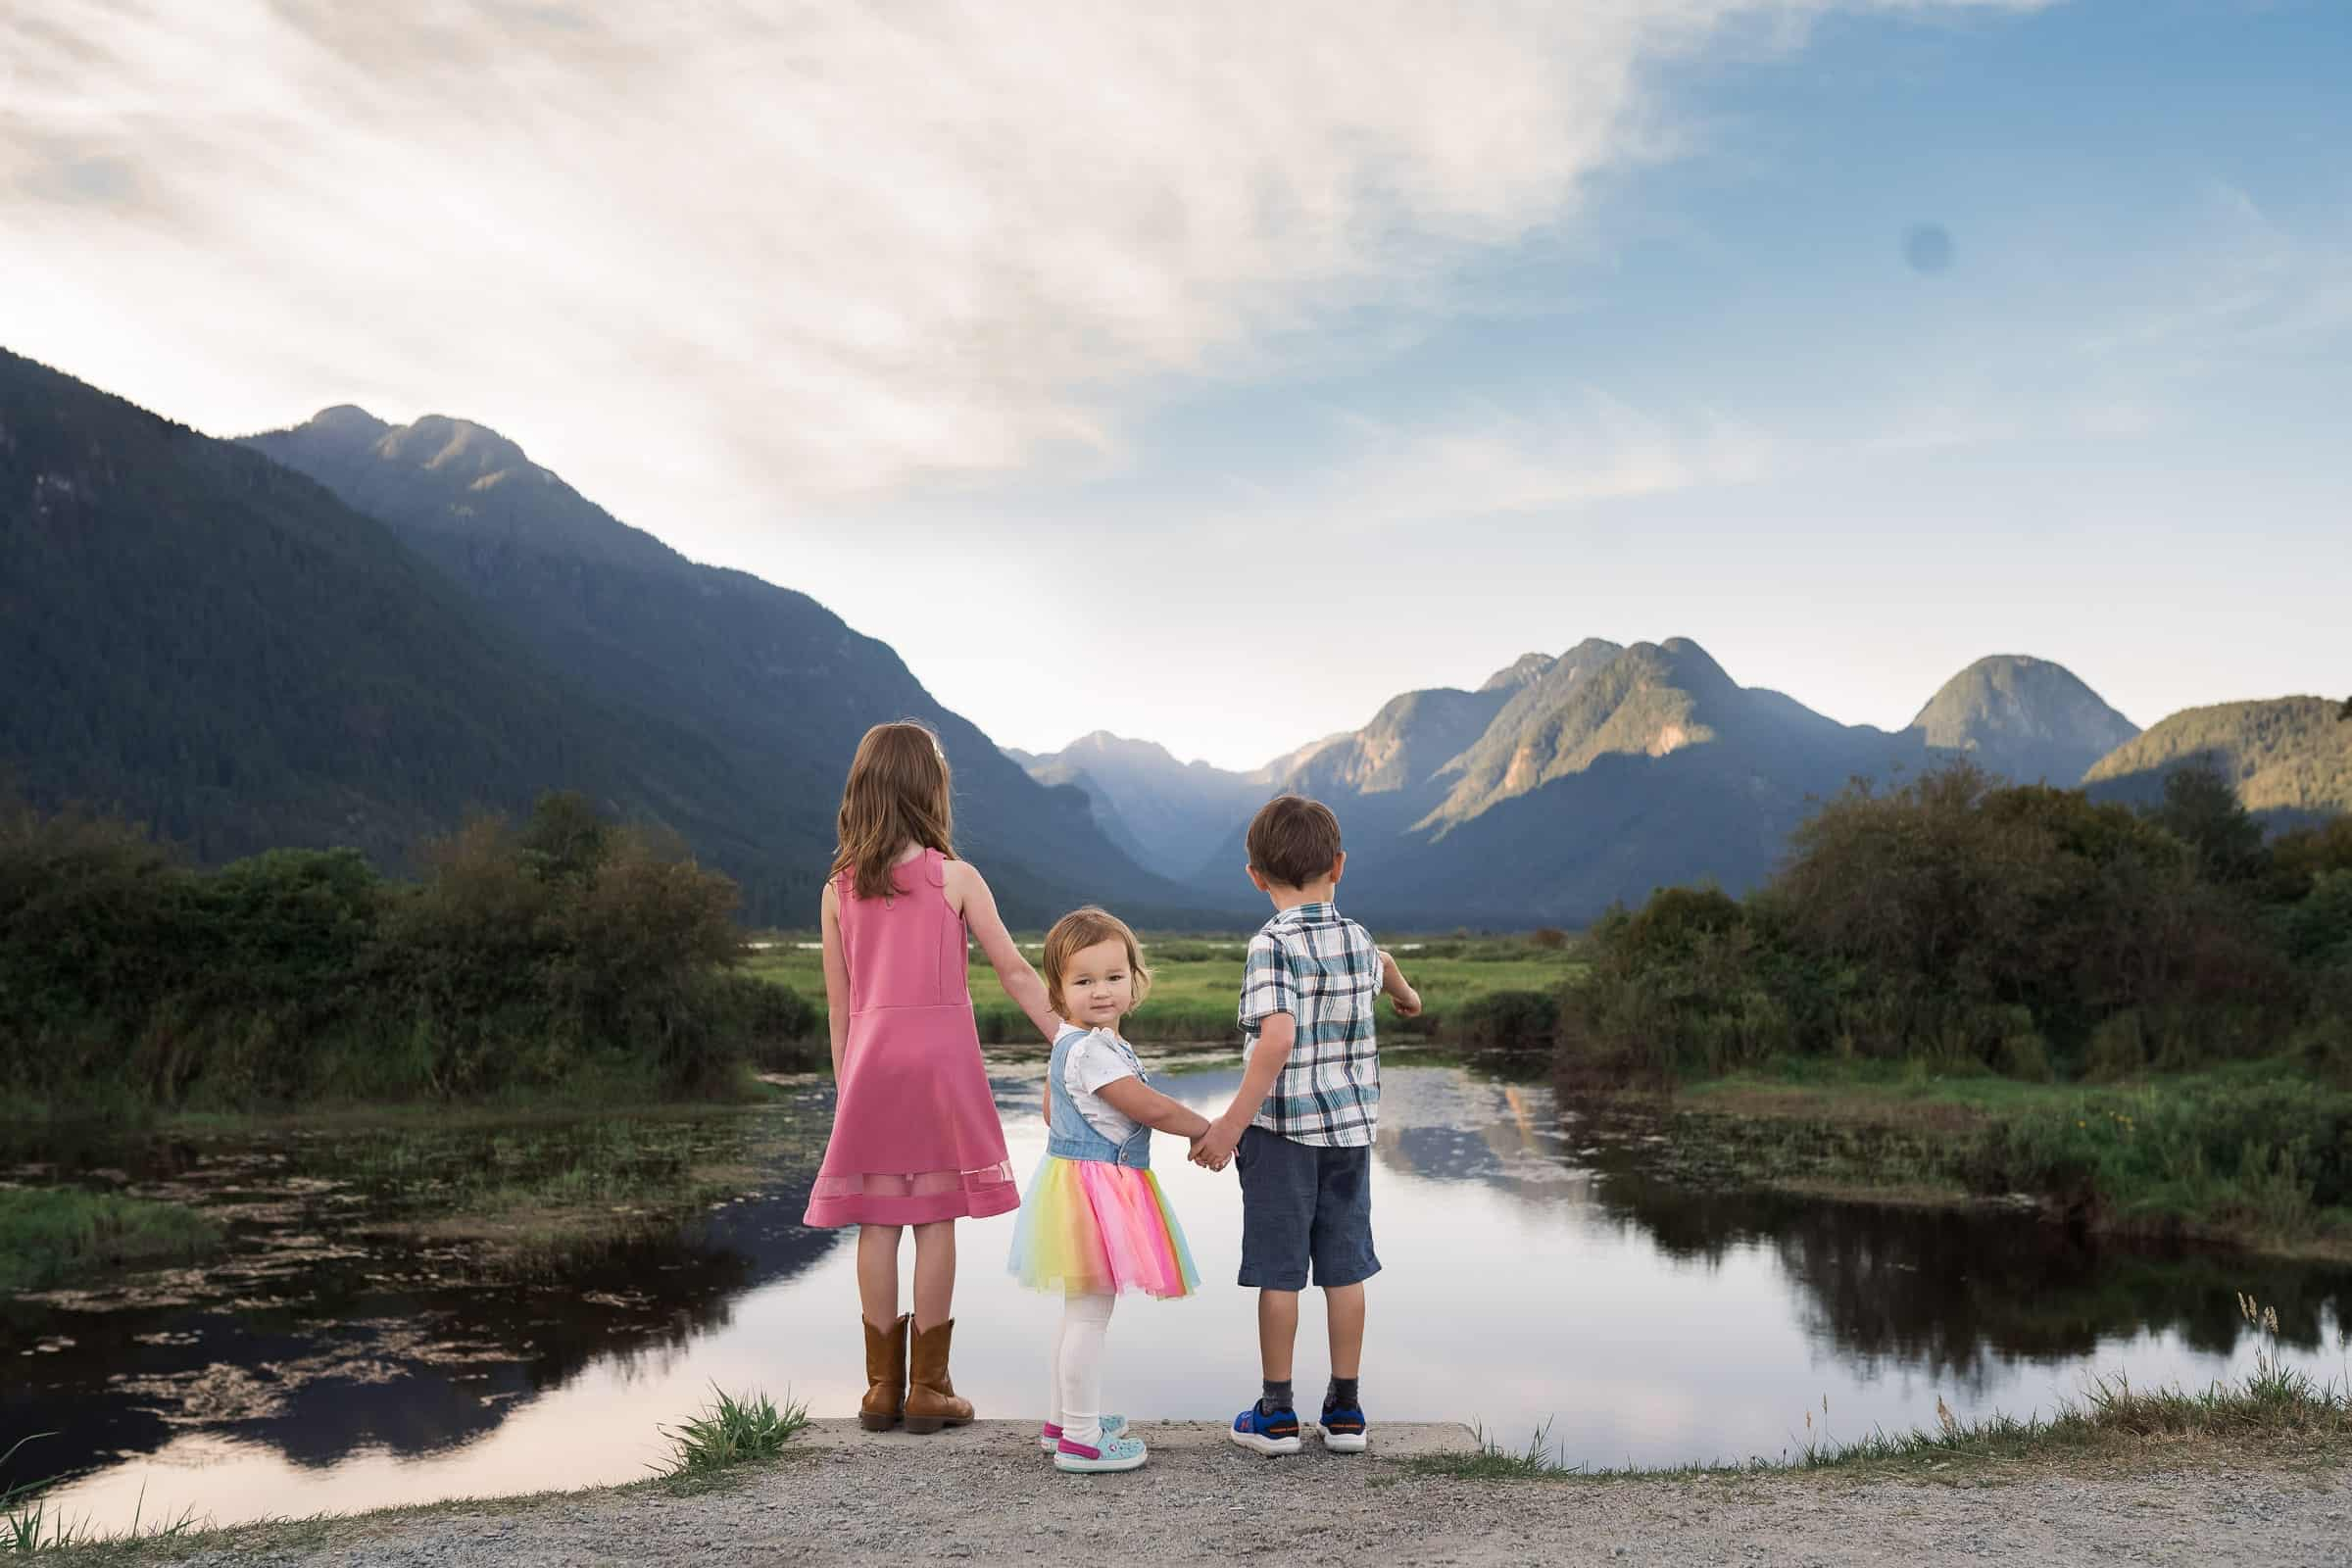 three kids looking out over the lake at the mountains